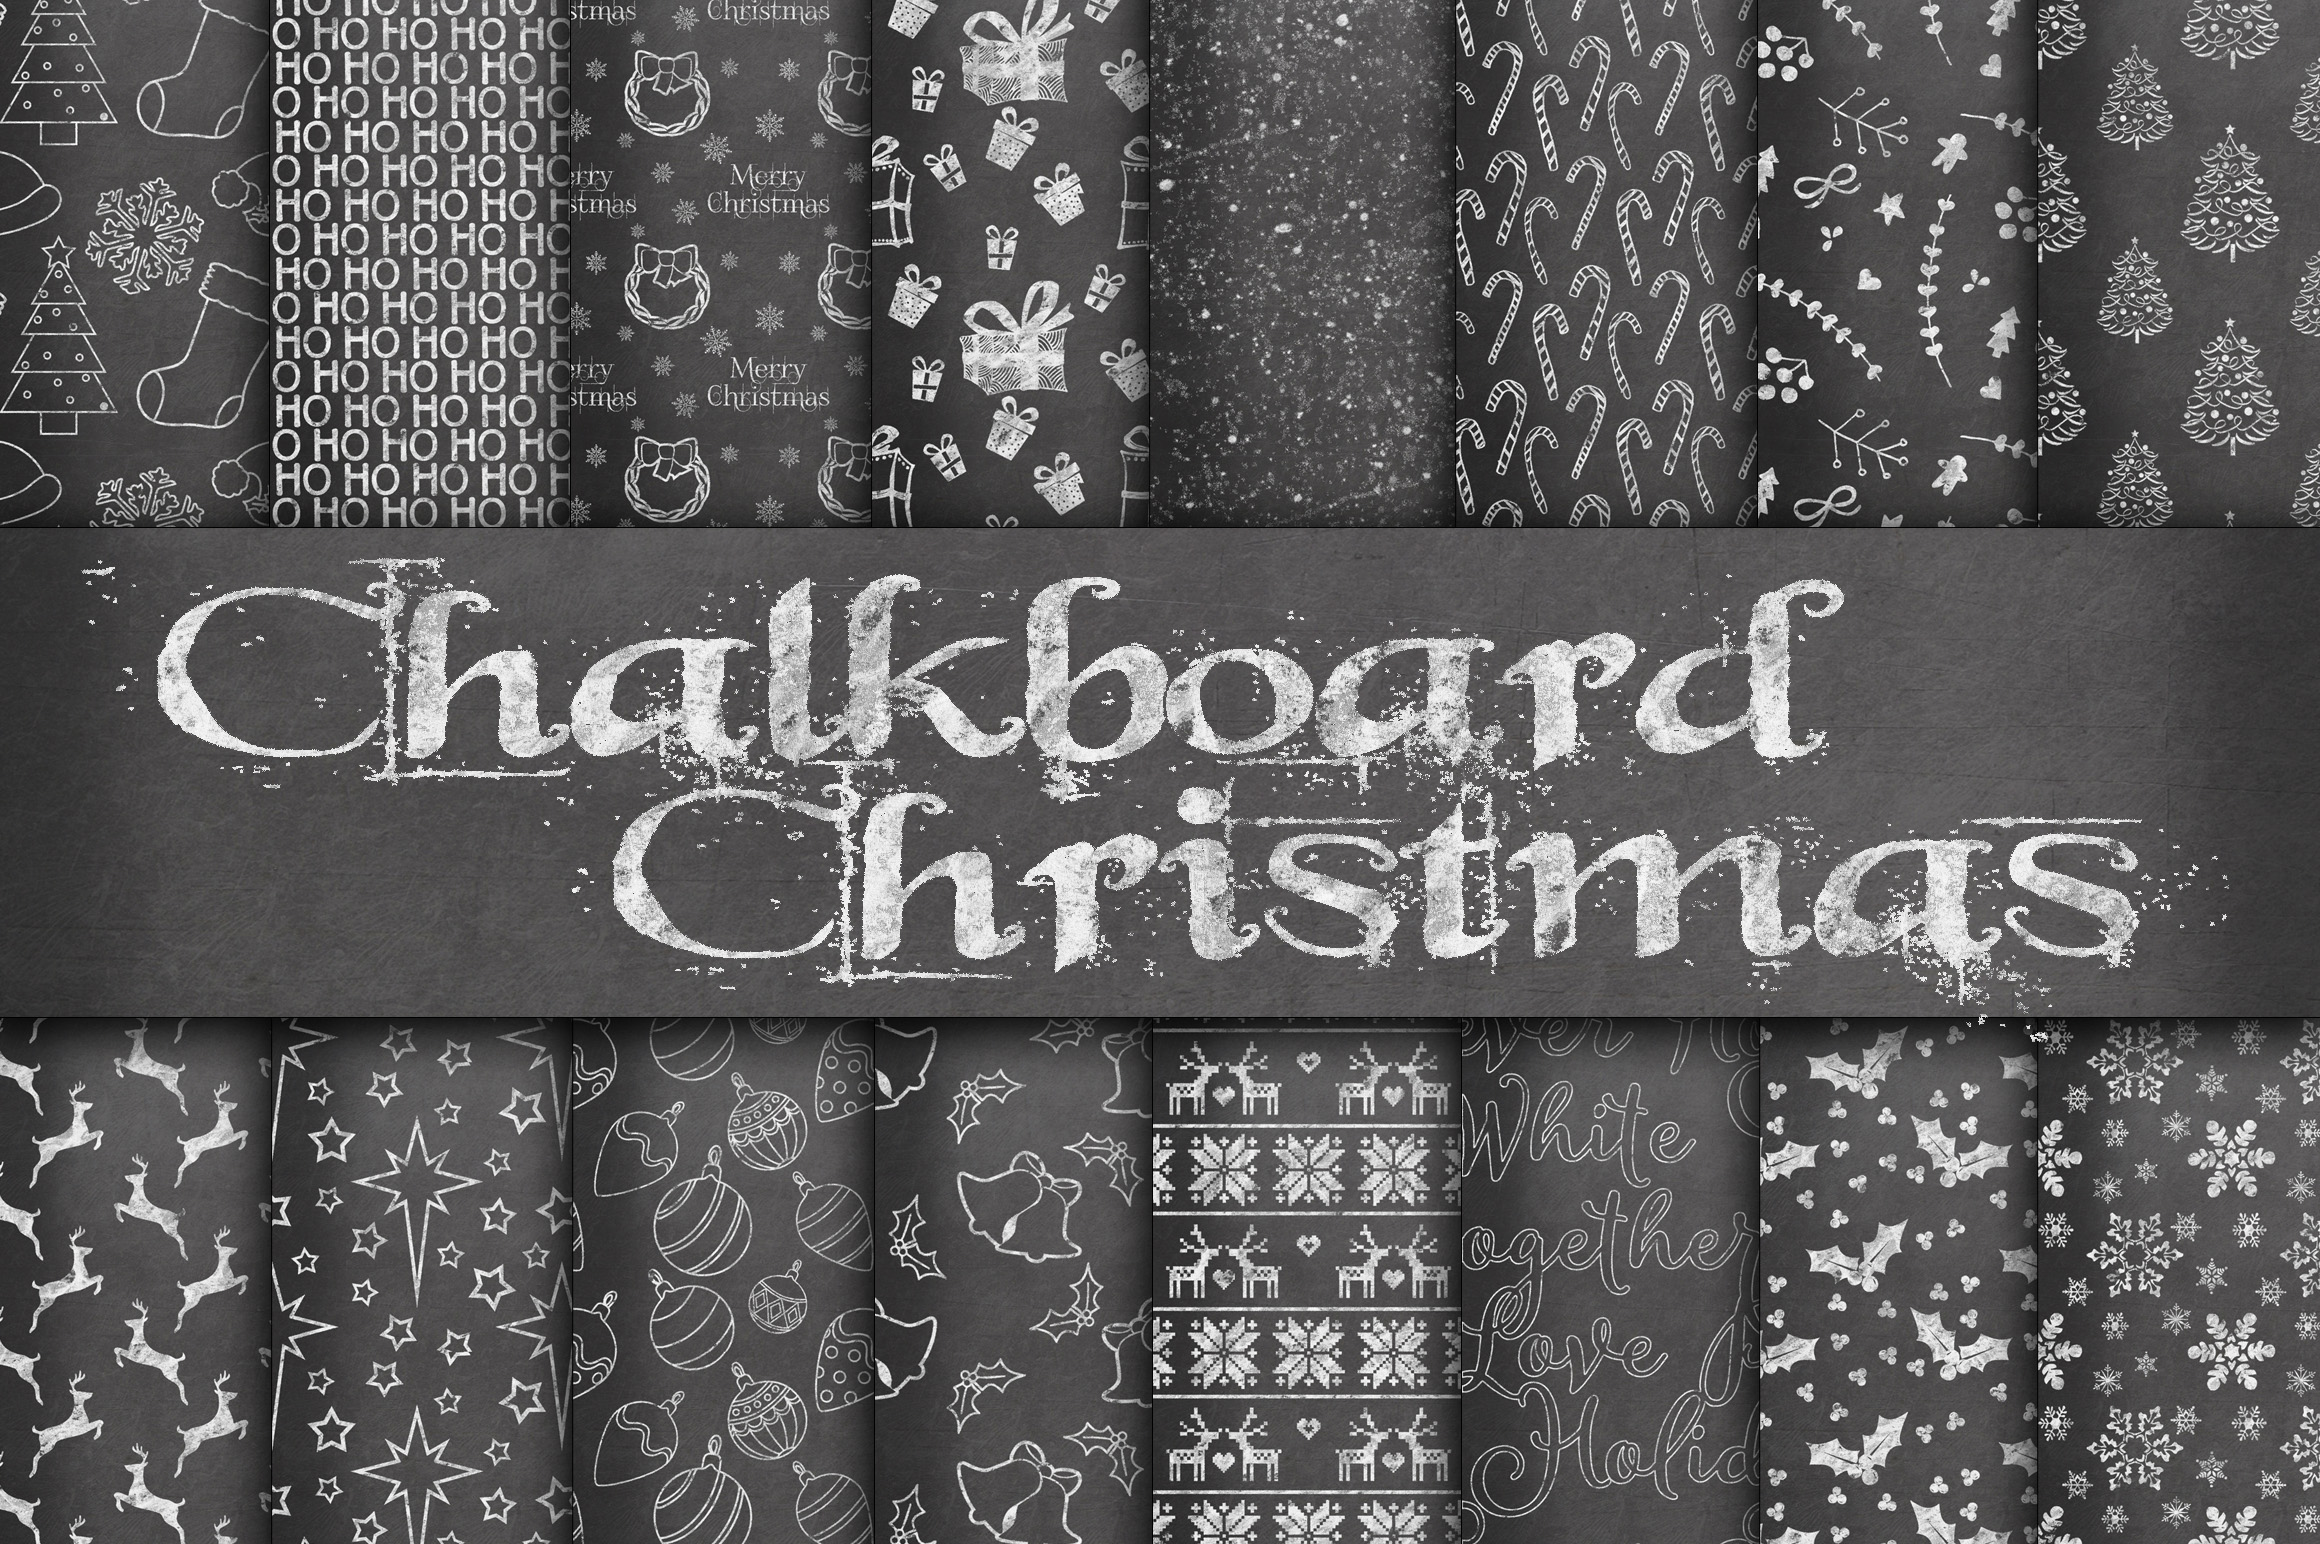 Download Free Chalkboard Christmas Digital Paper Graphic By Oldmarketdesigns for Cricut Explore, Silhouette and other cutting machines.